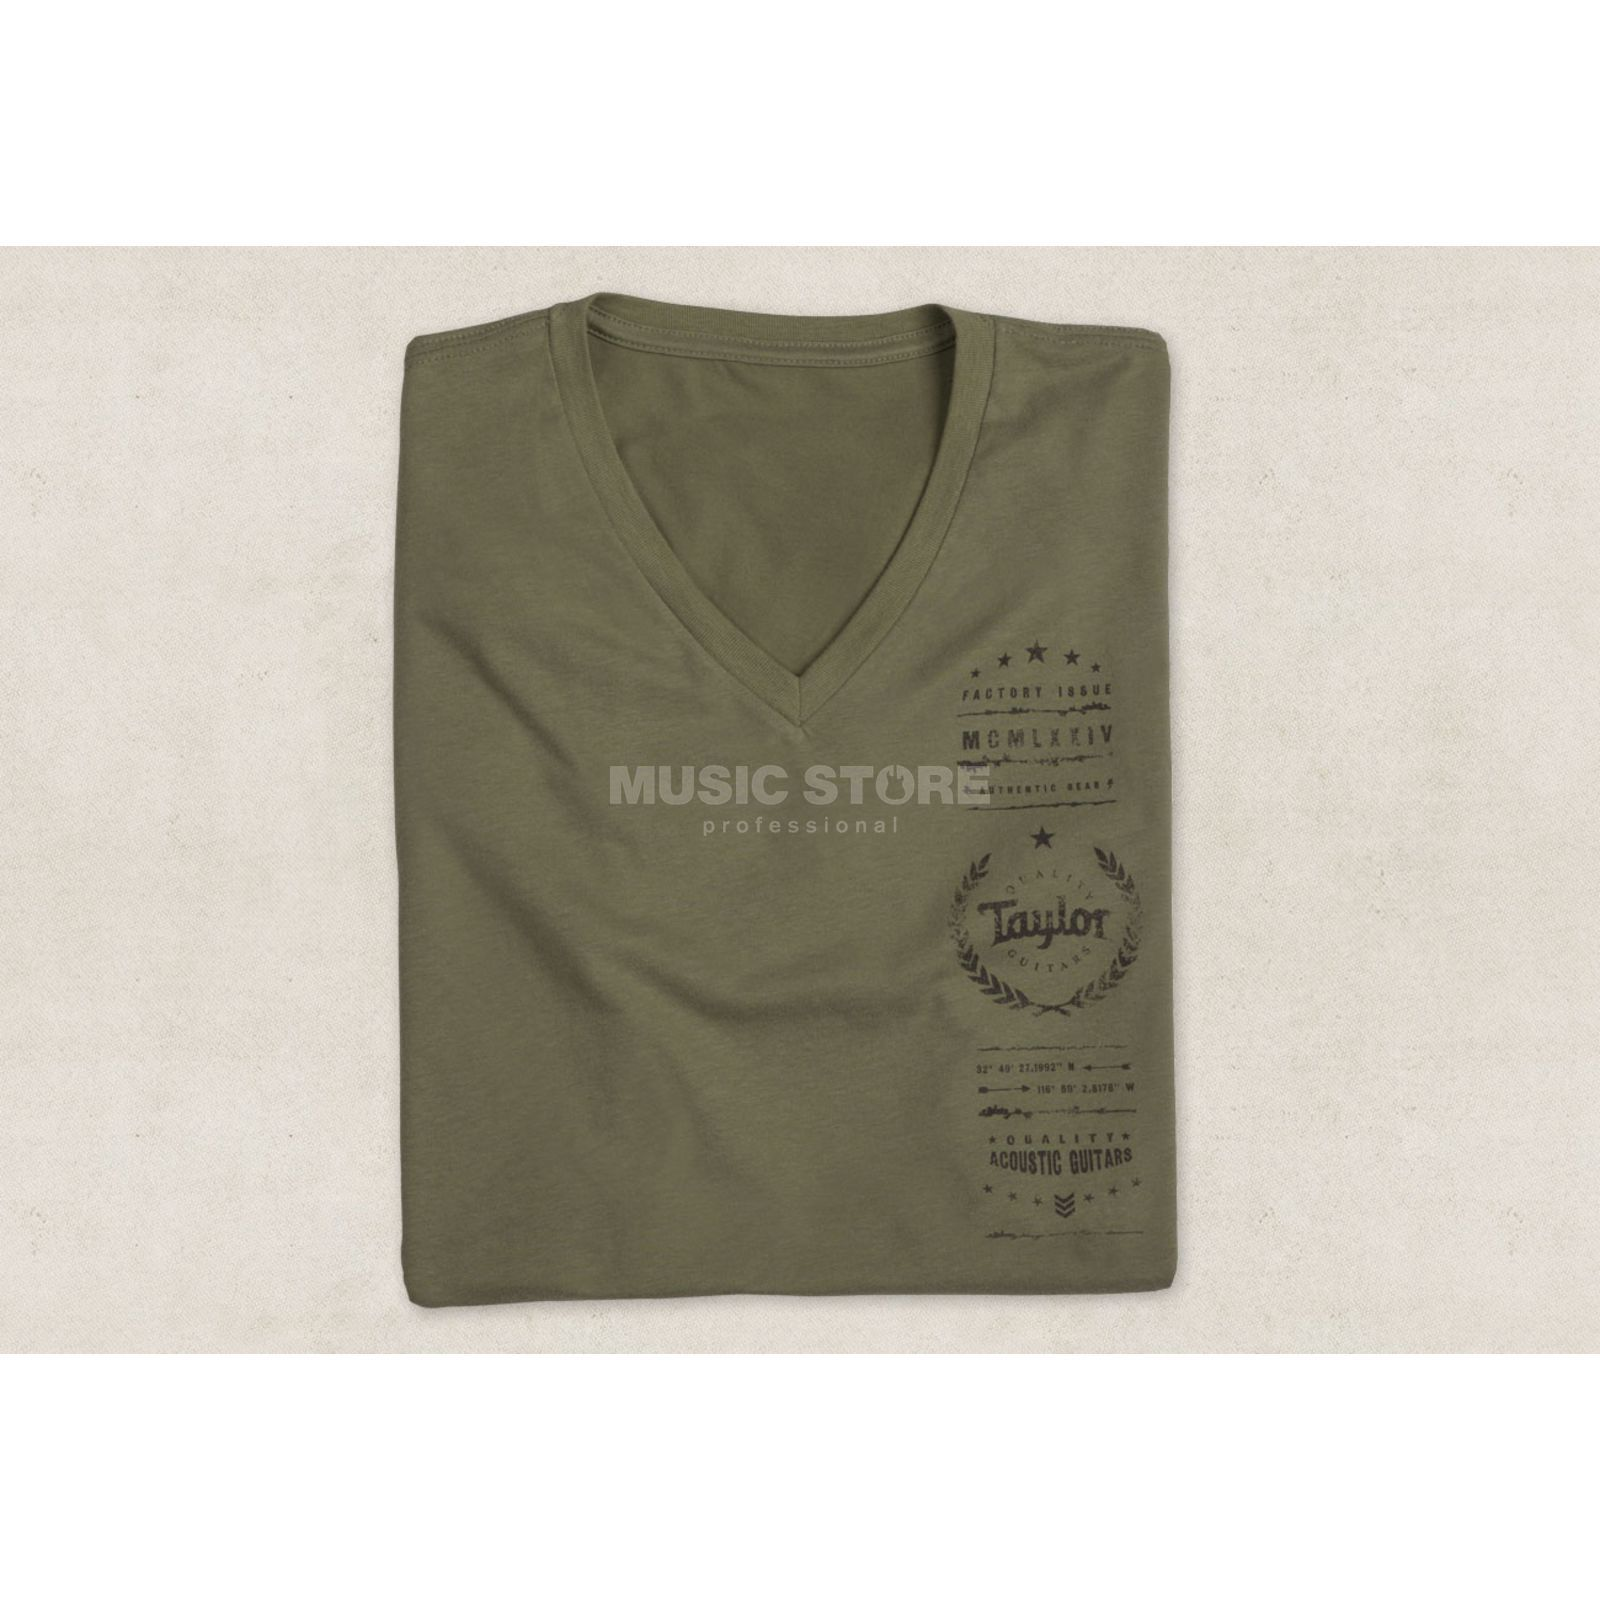 Taylor Men's Factory Issue T-Shirt S V-Neck Olive Produktbild